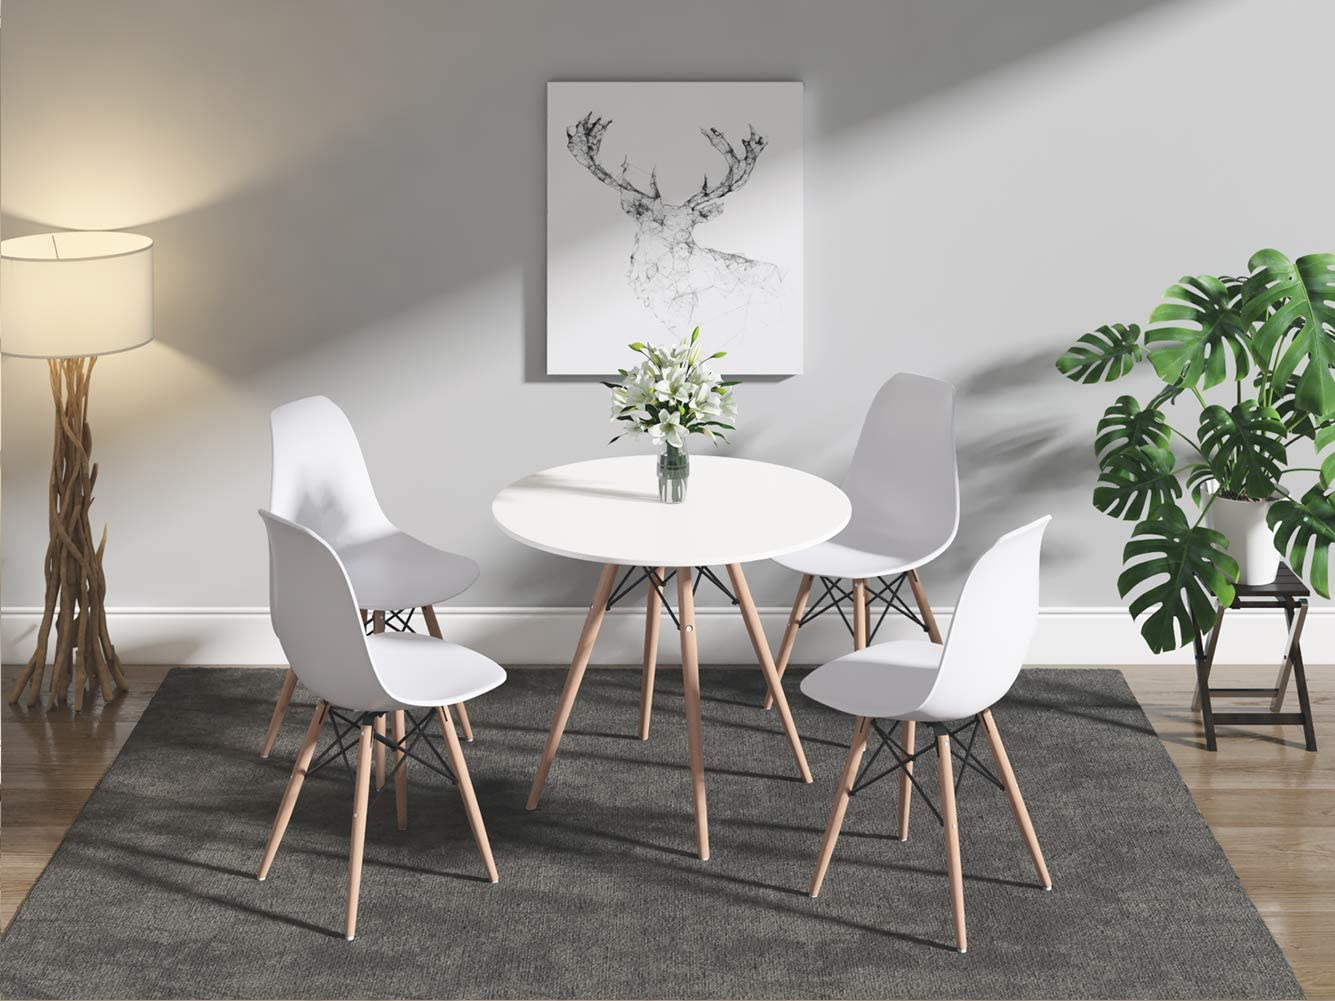 Dining Table and Chairs Set of 7, 7cm Solid Wooden Round Table with Metal  Legs and 7 White Chairs, Dining Room Furniture Set for Home, Office,